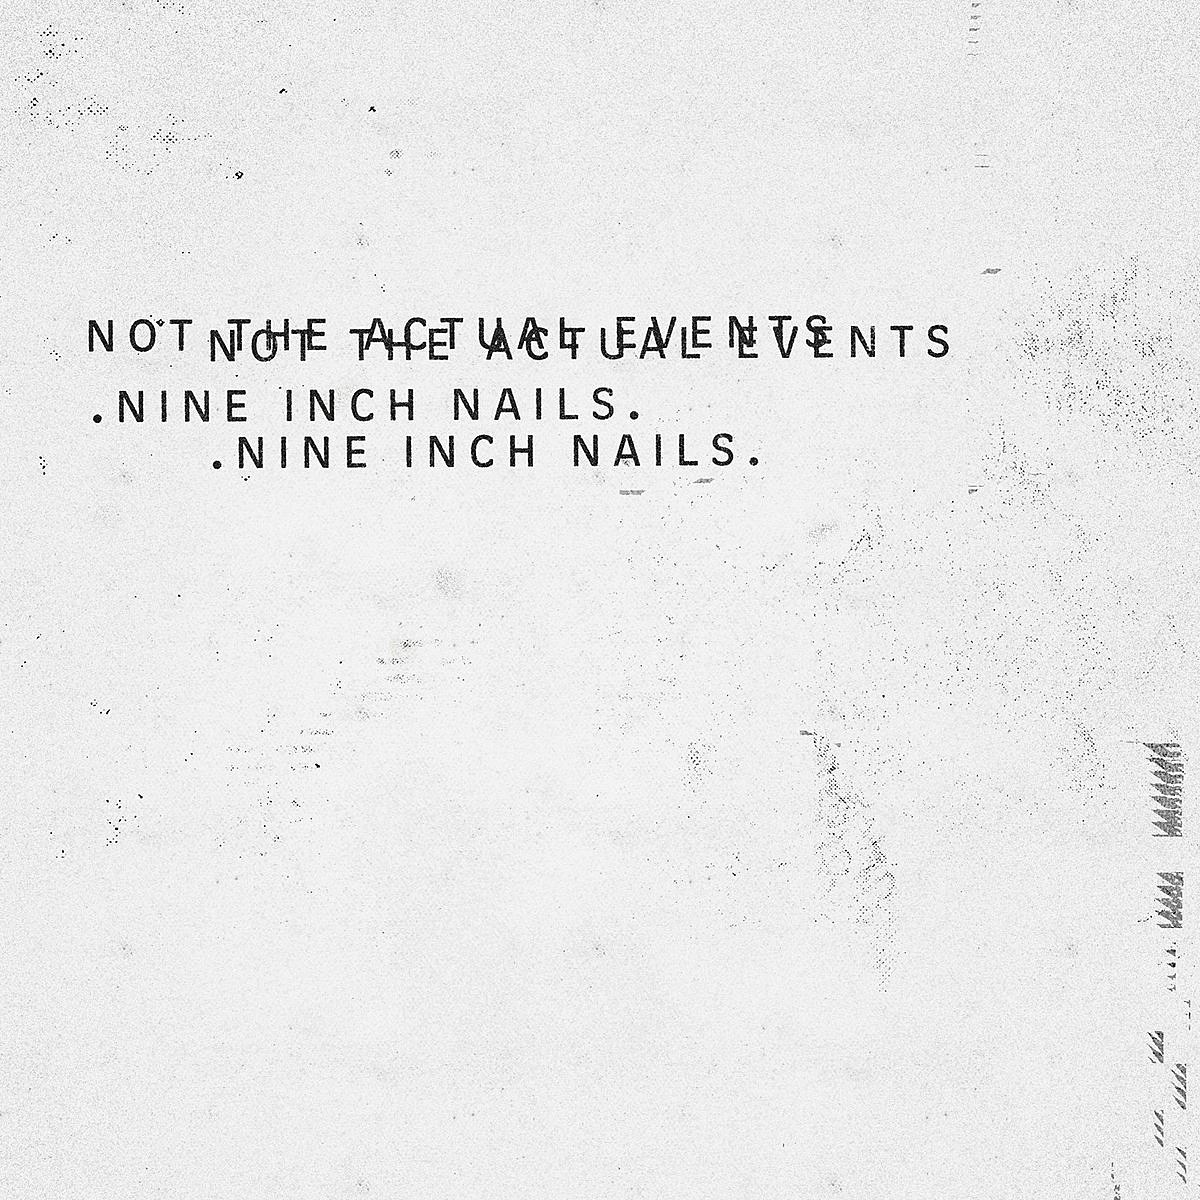 Nine Inch Nails releasing a new EP next week